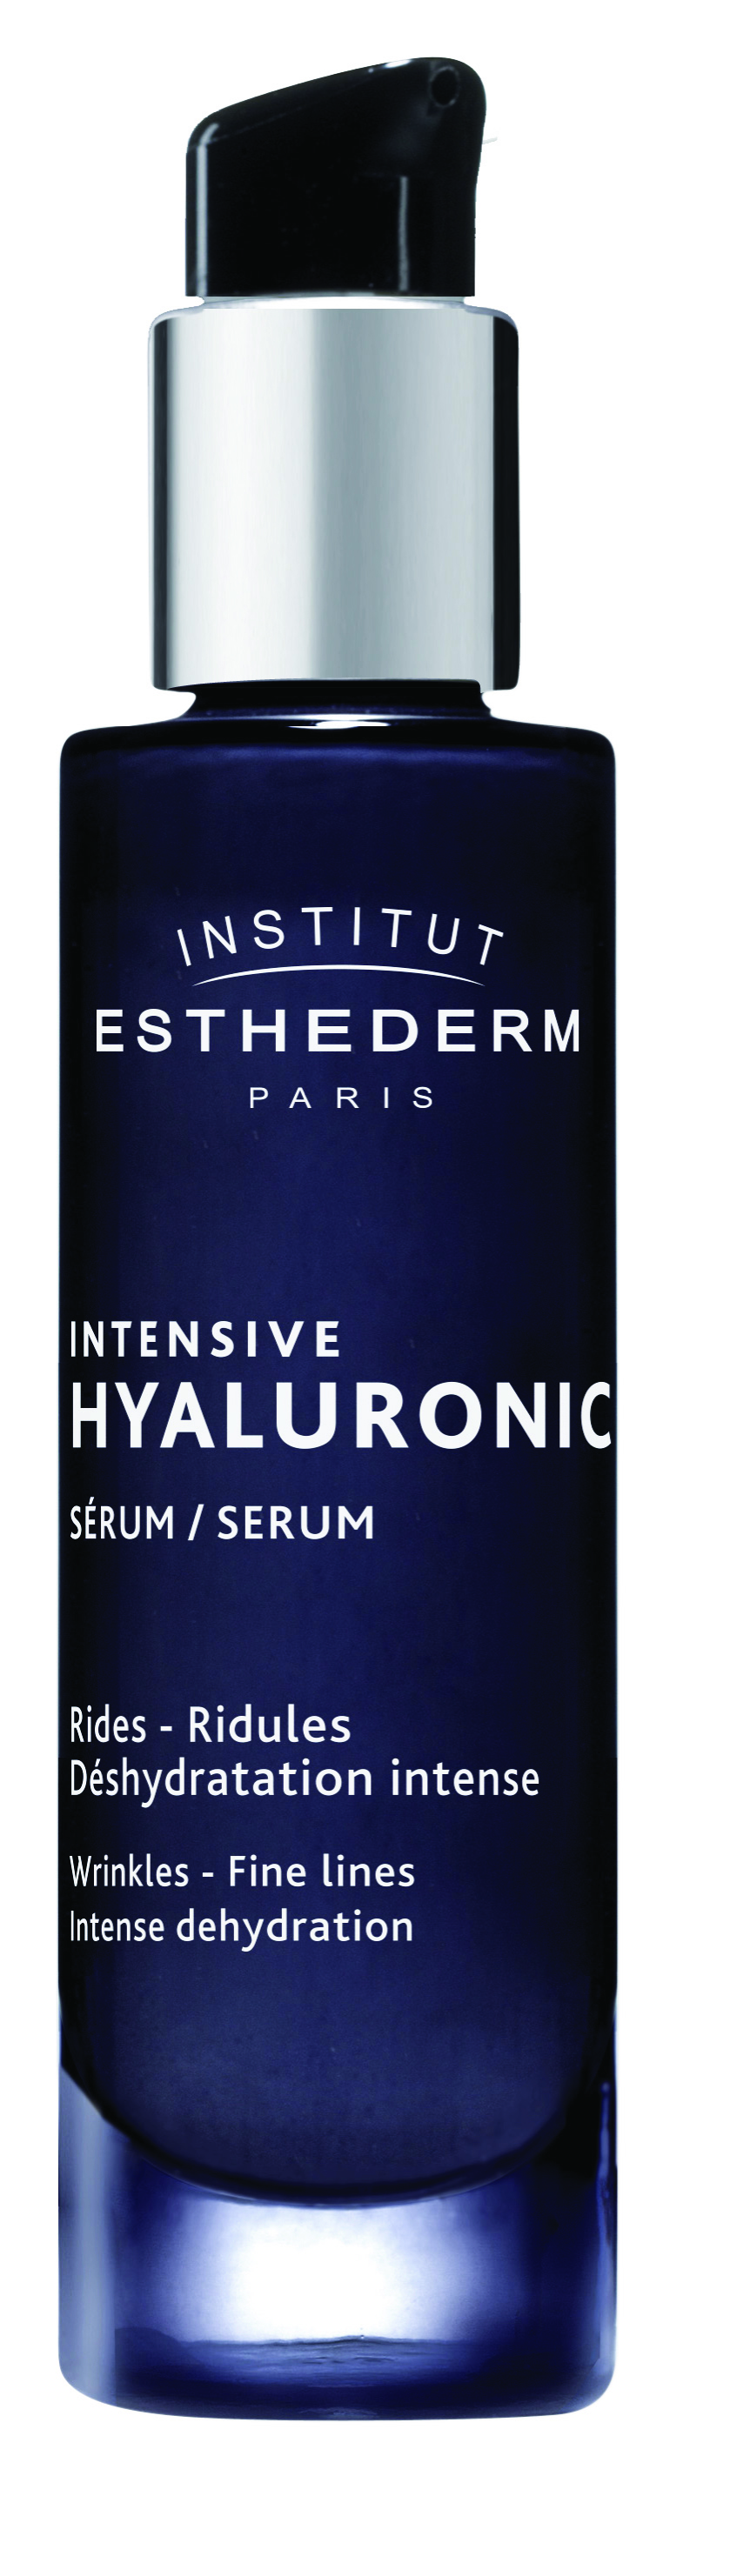 serum-acide-hyaluronique